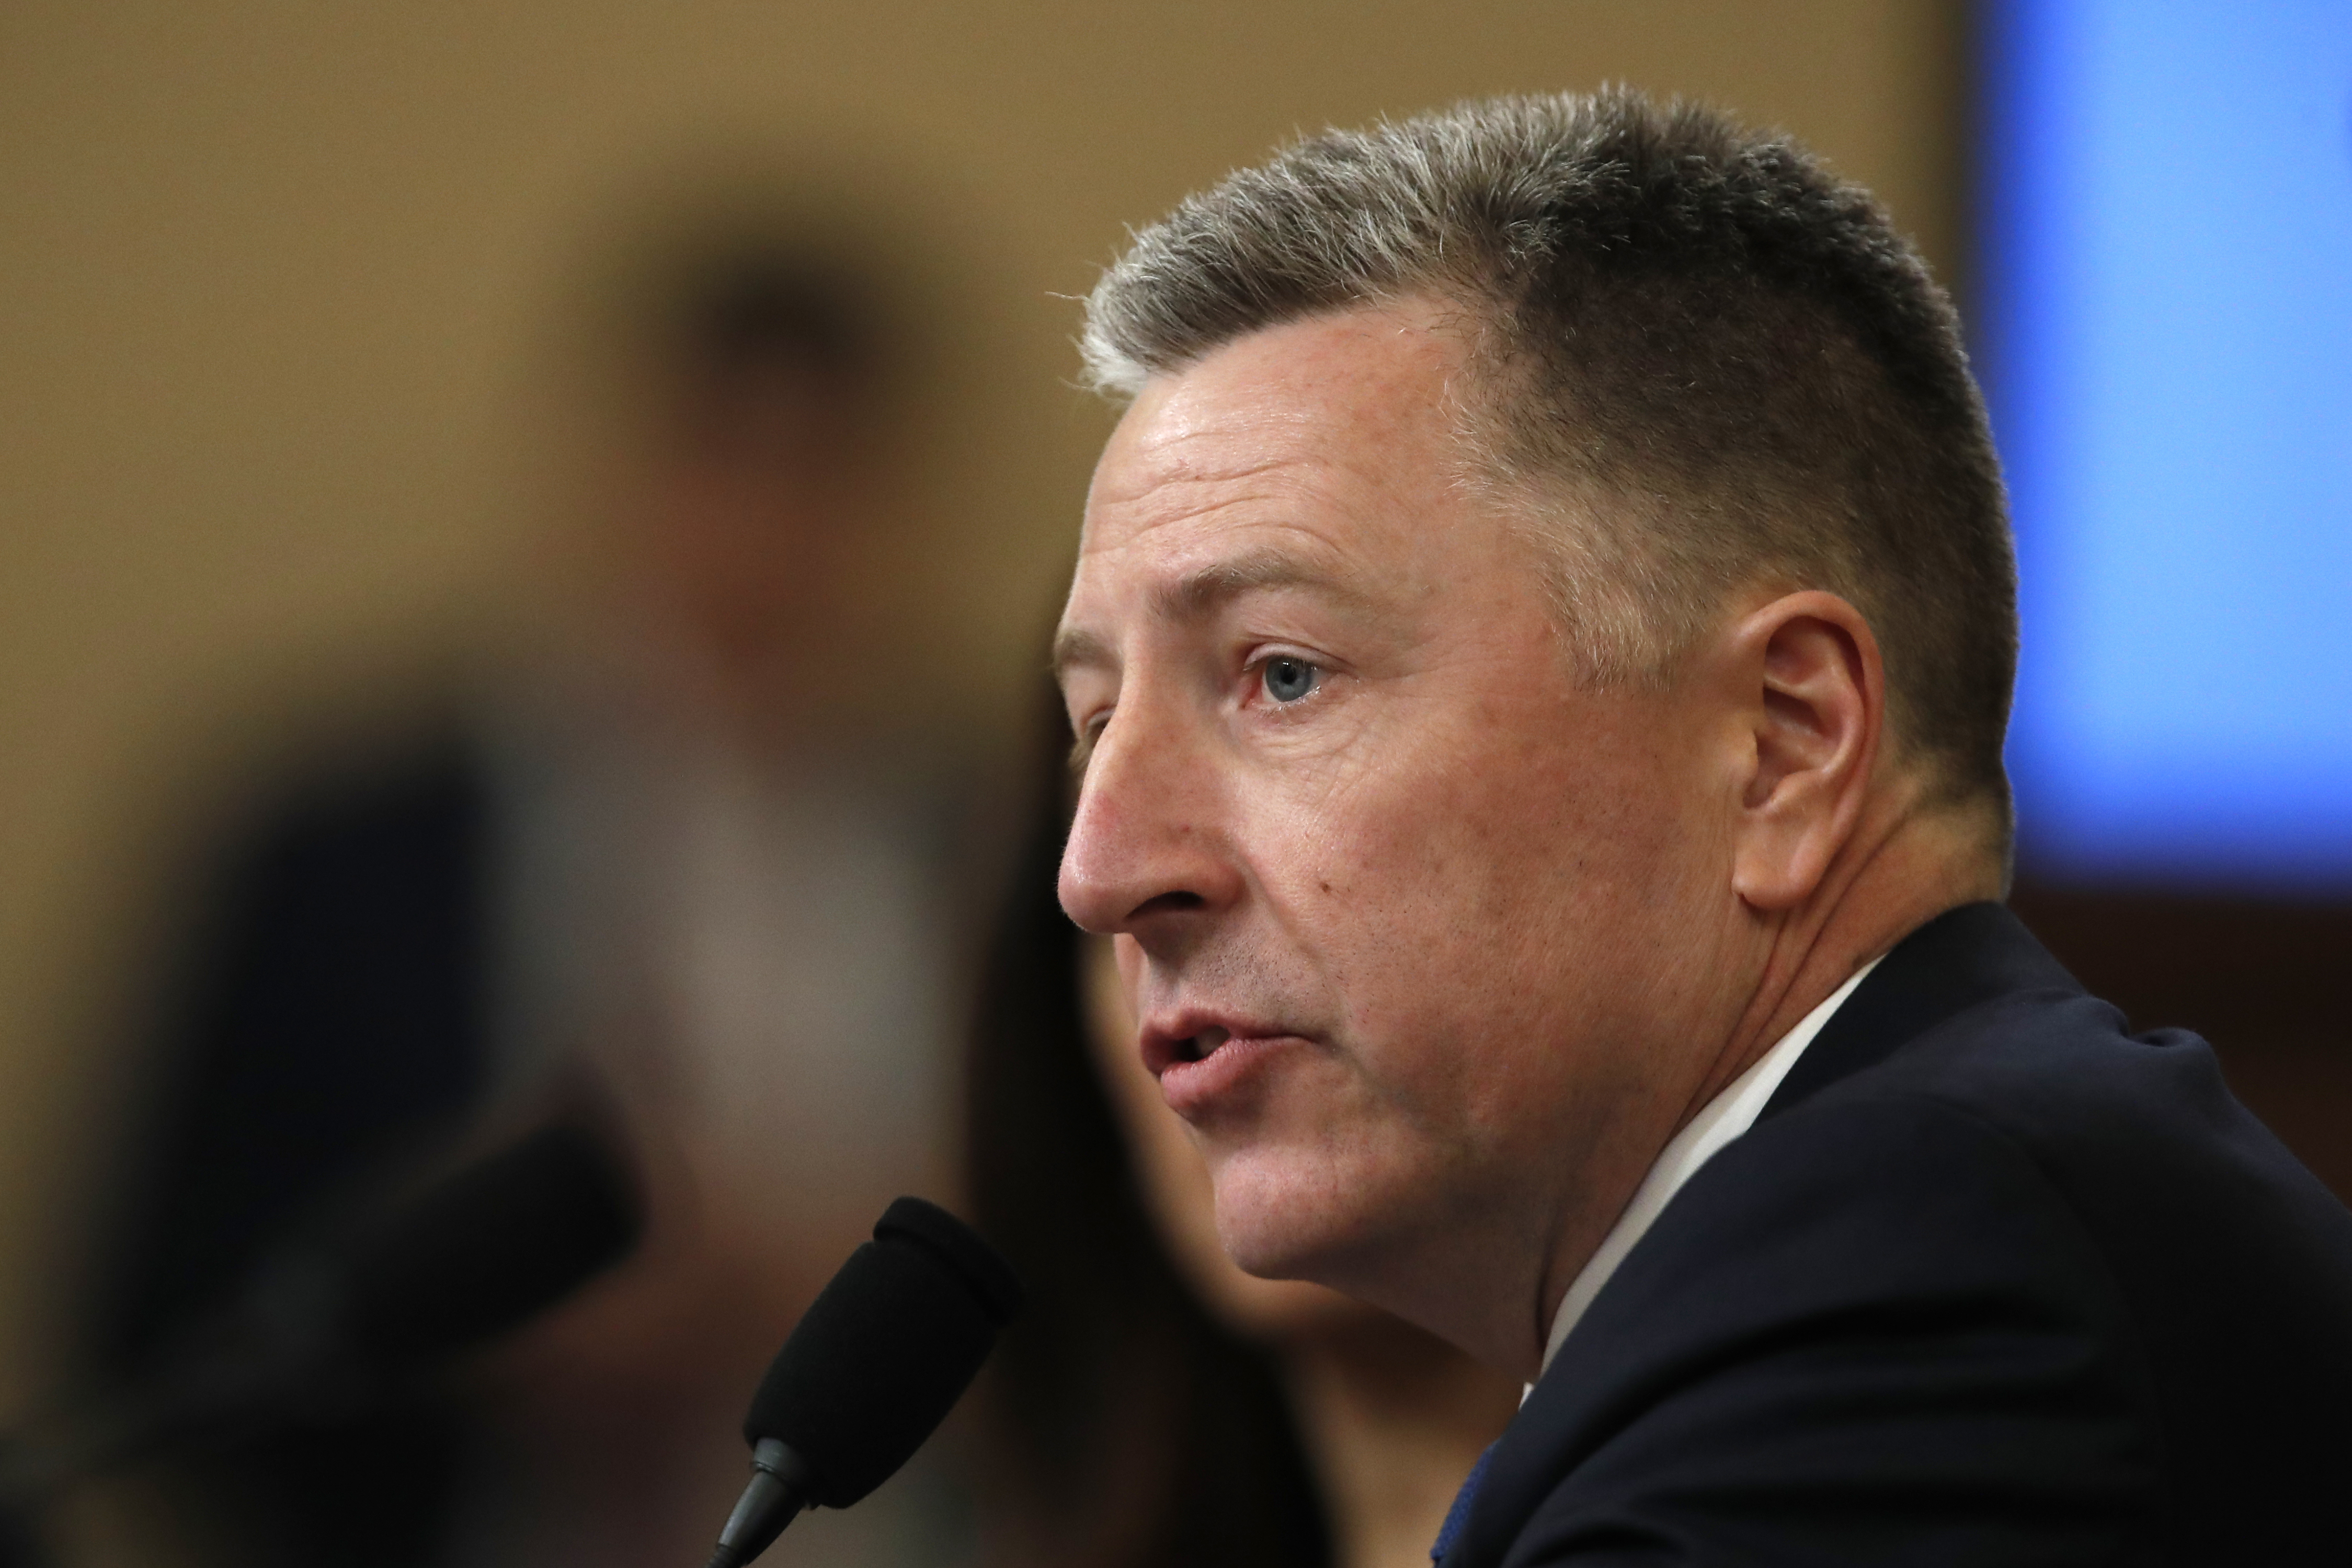 Volker would have objected to investigations if he knew administration